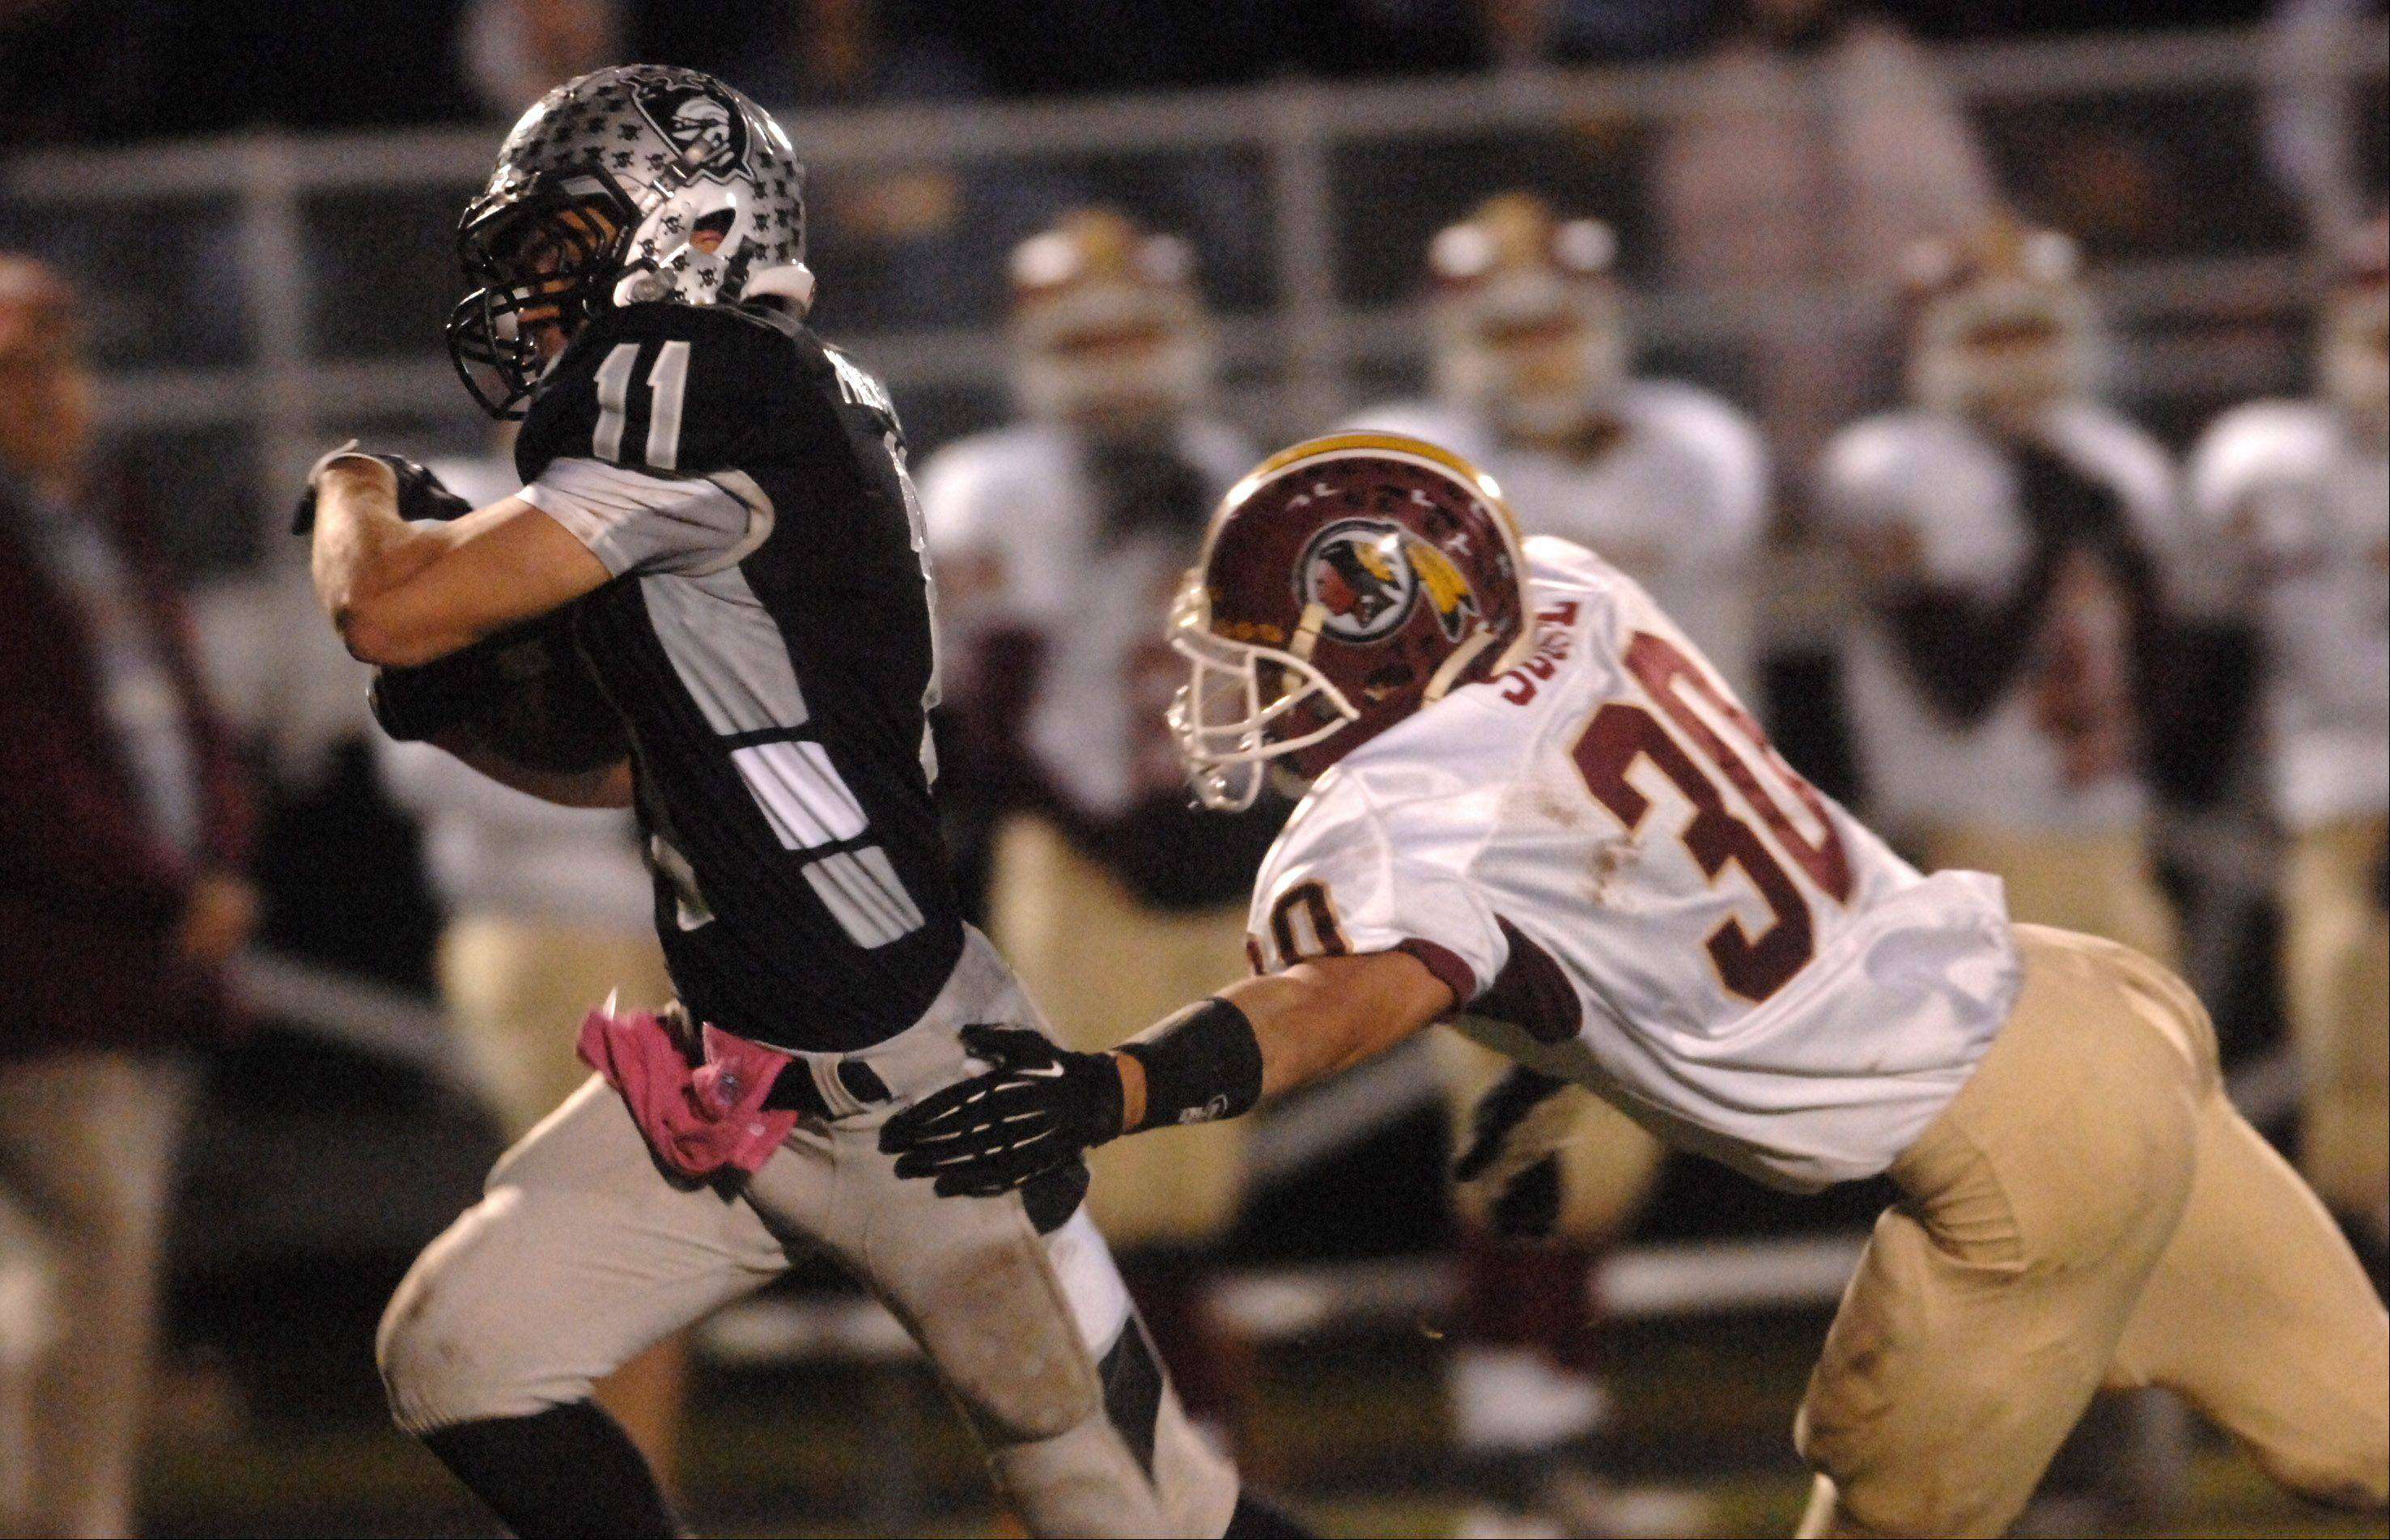 Kaneland's Zack Martinelli escapes the grasp of Morris' Reese Sobol en route to a 89-yard touchdown .